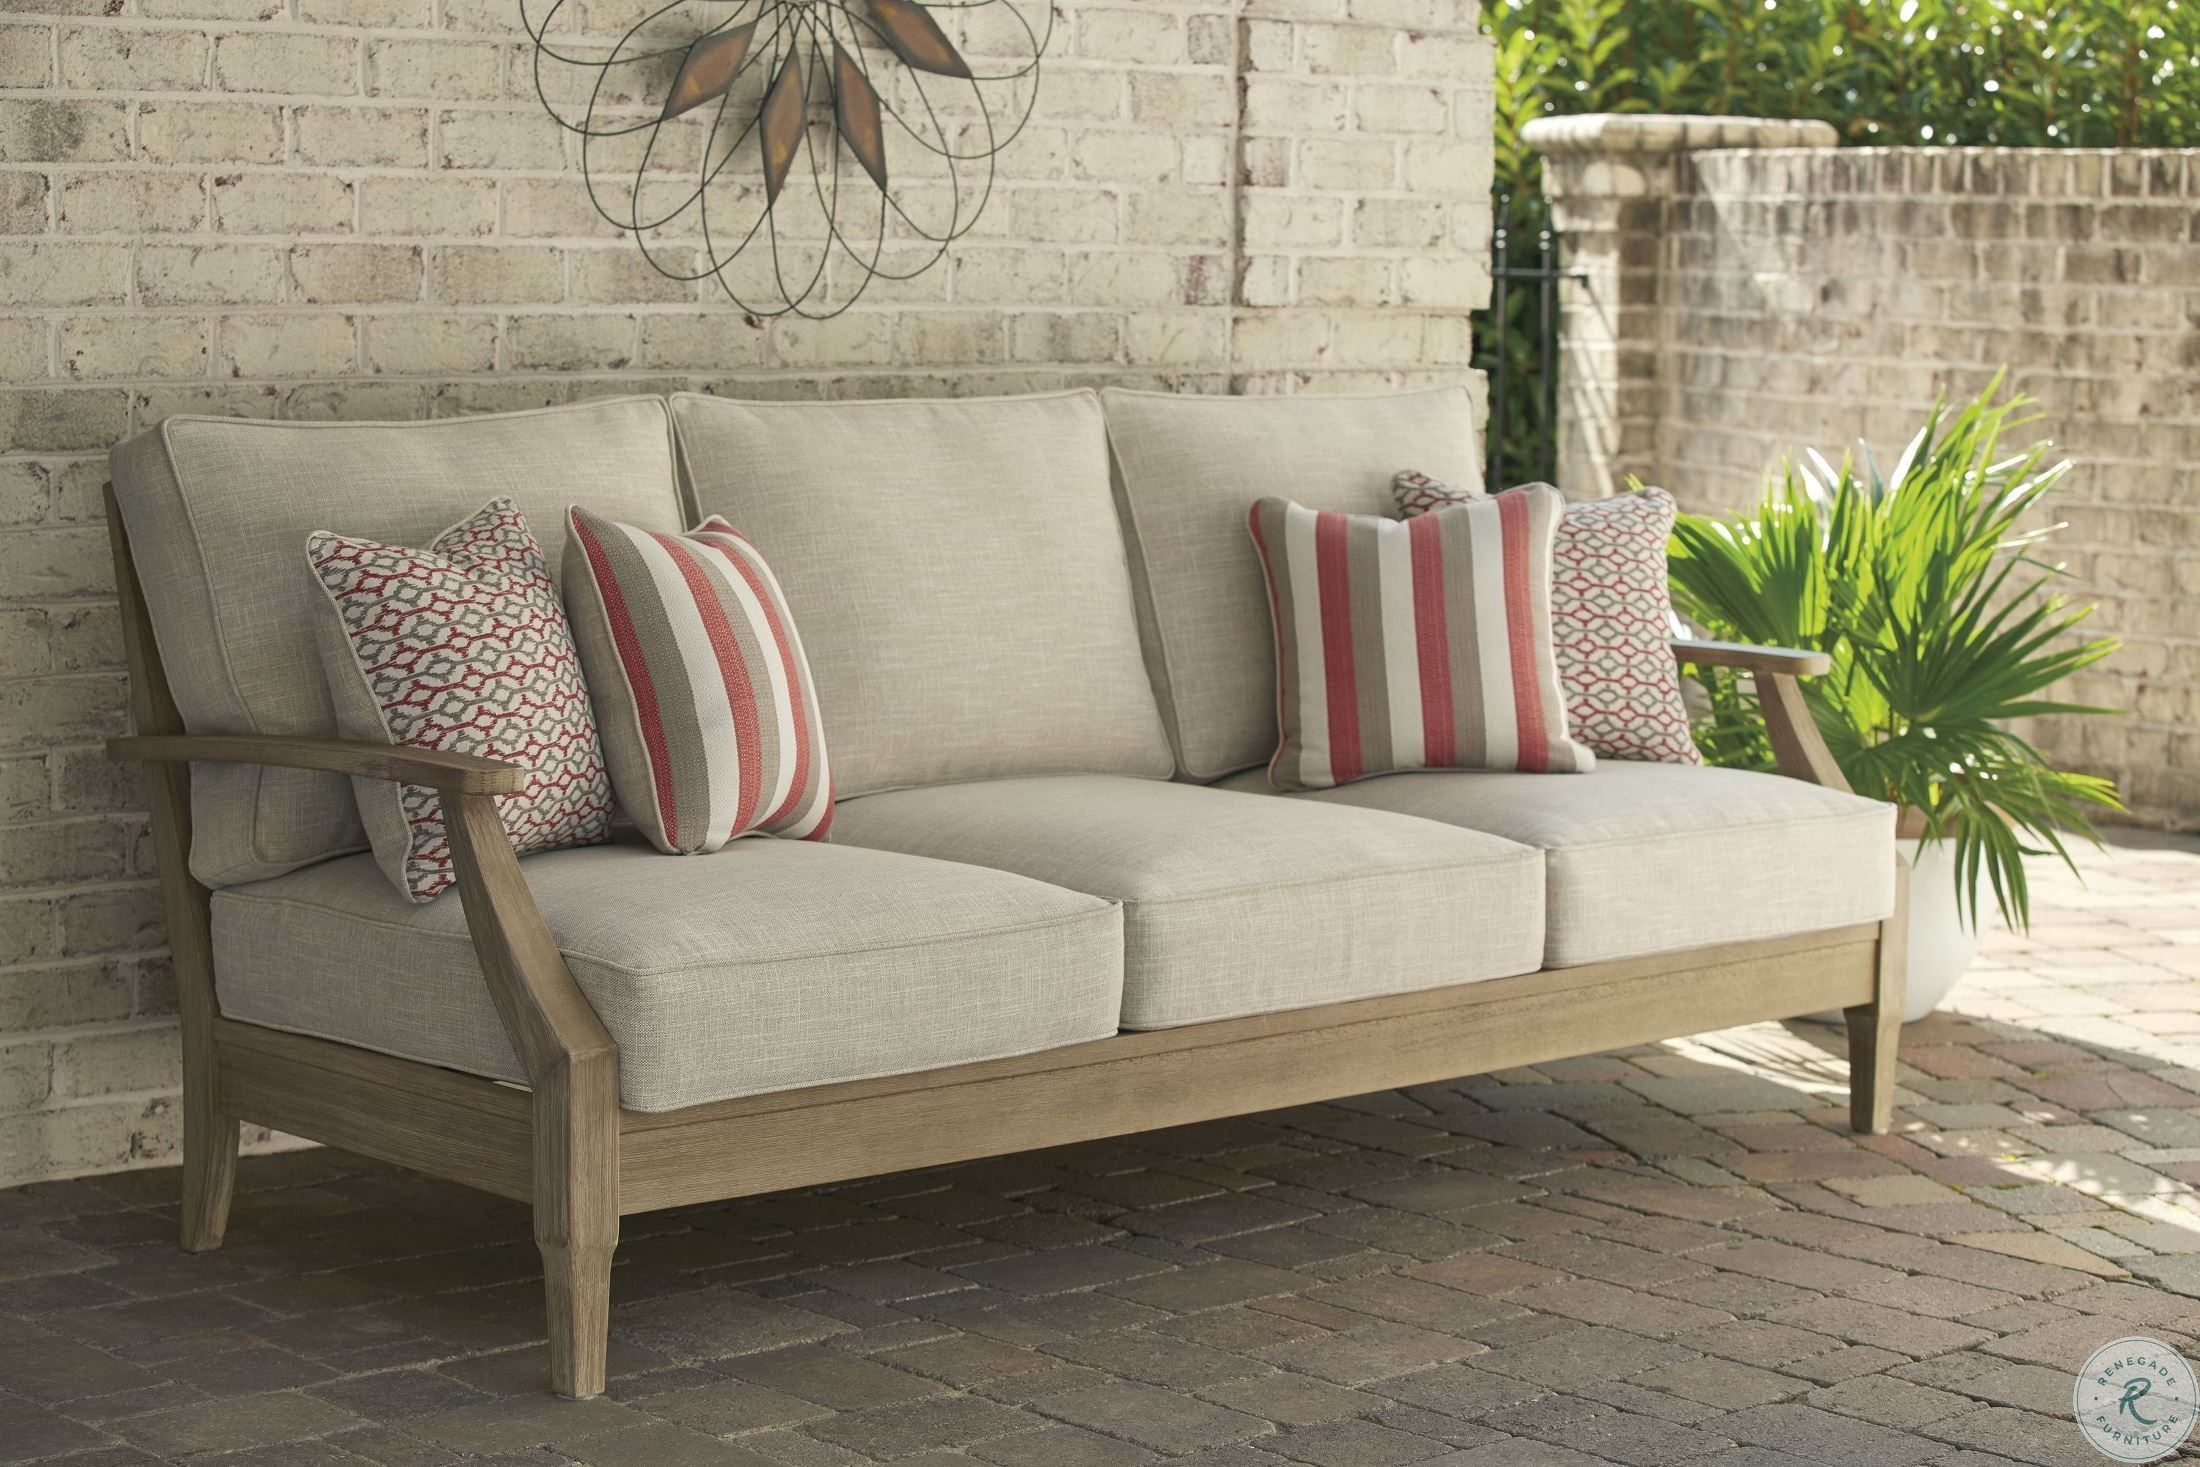 Clare View Beige Outdoor Living Room Set with Cushion in ... on Clare View Beige Outdoor Living Room id=96103